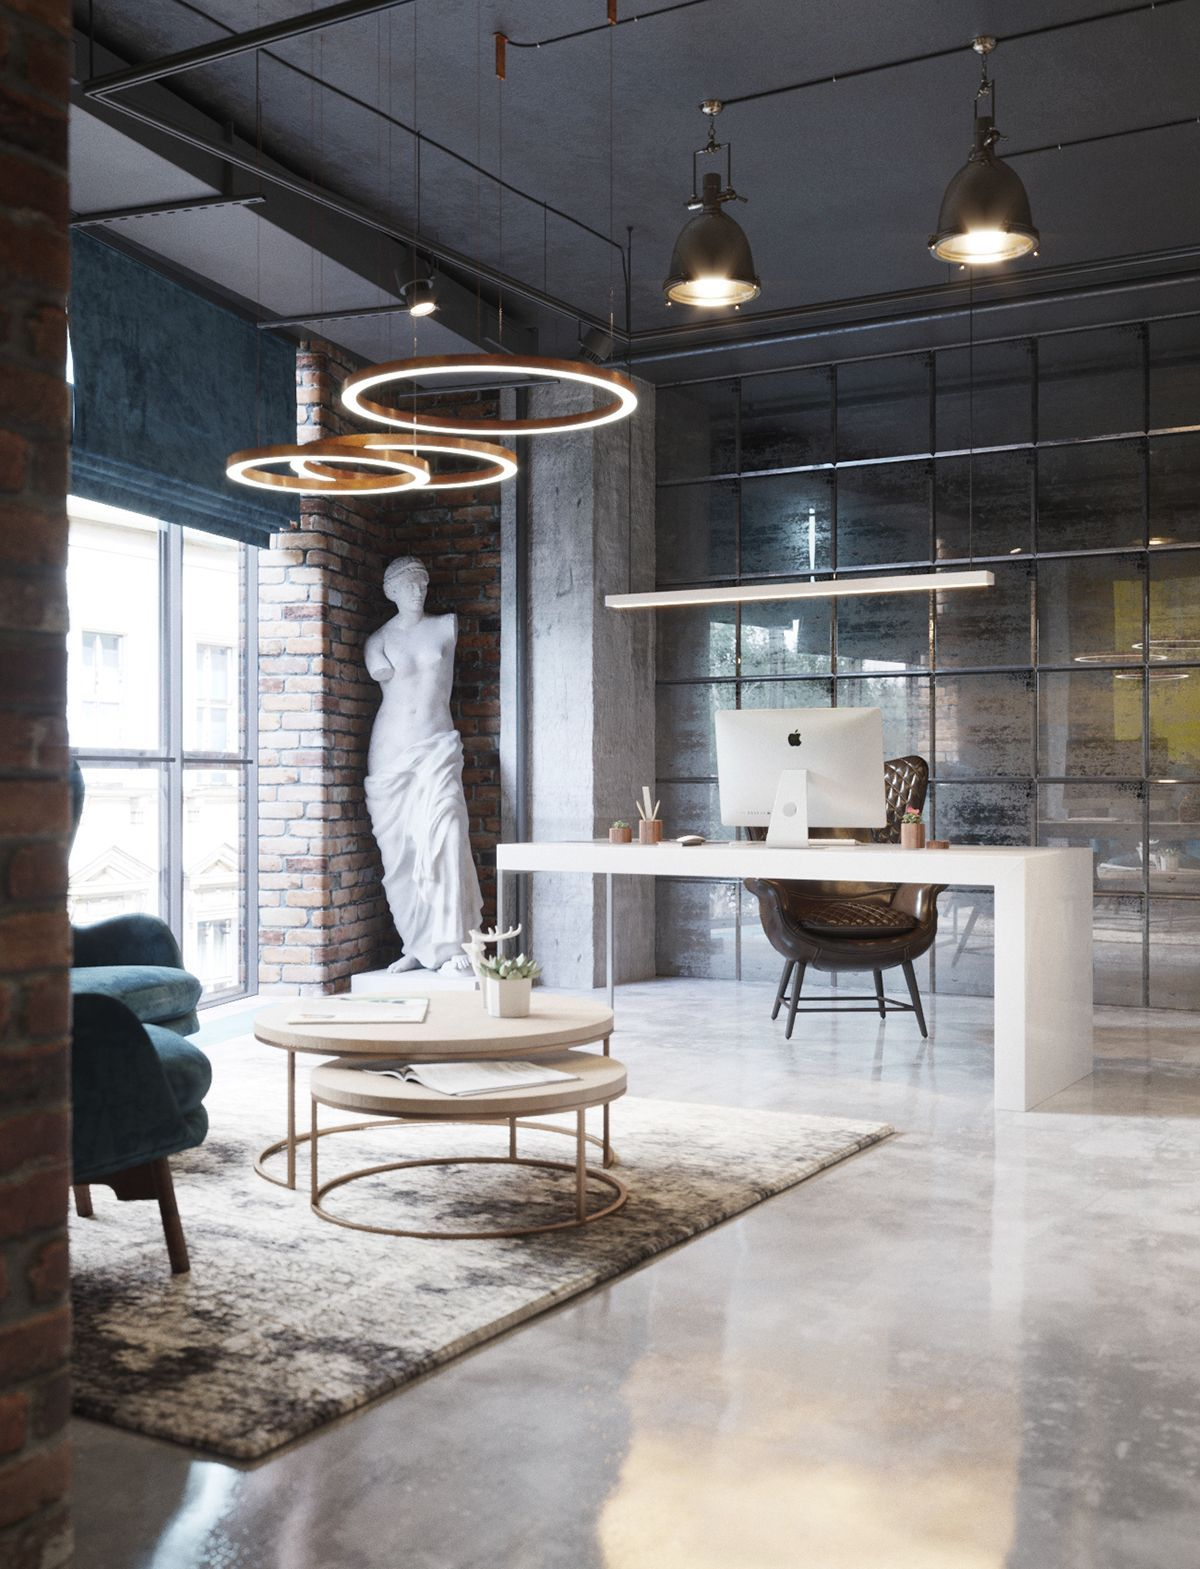 New project for office spaces loft style on behance - Interior design home office space ...